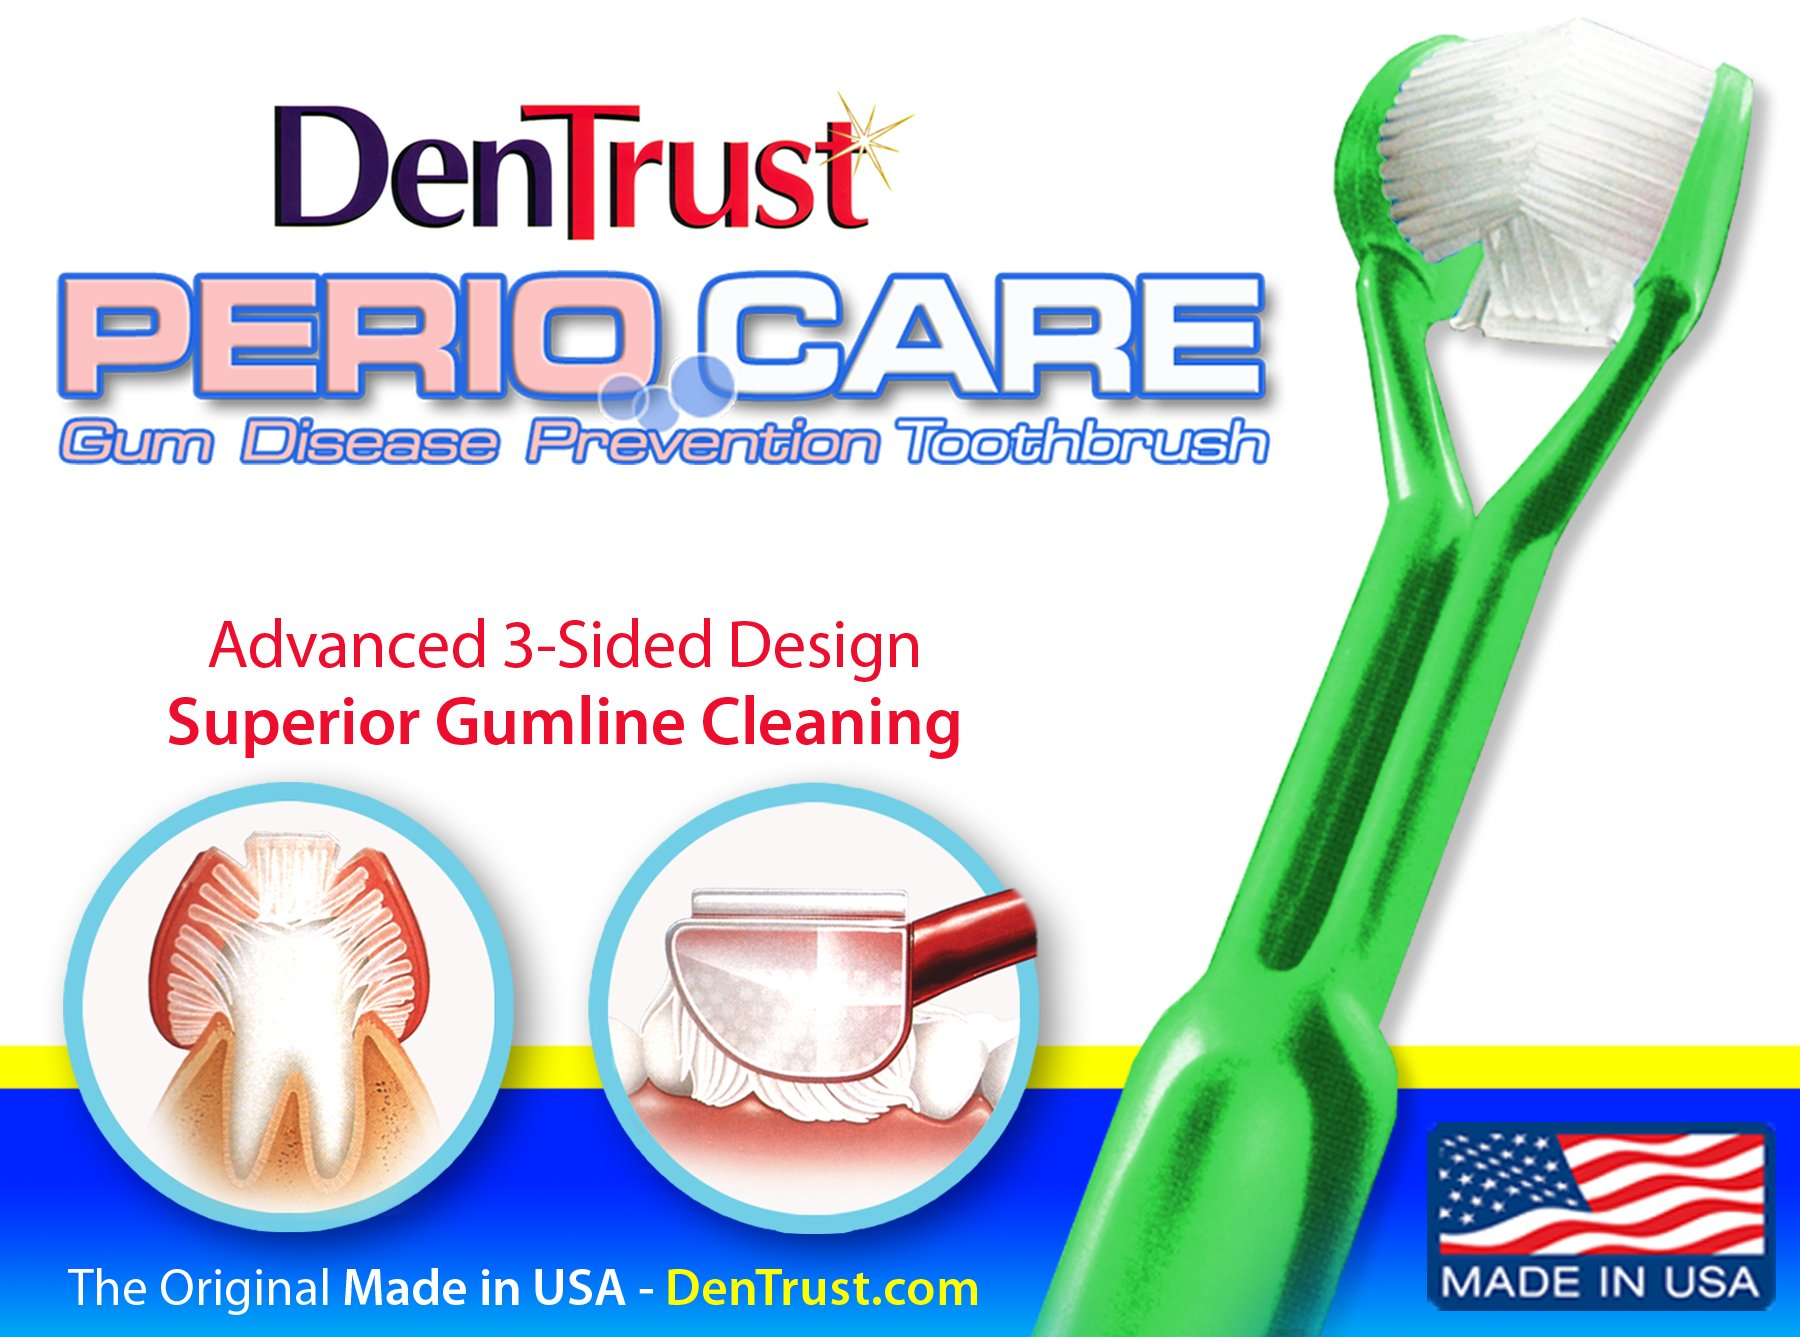 Amazon Dentrust 3 Sided Perio Care Toothbrush Periodontal